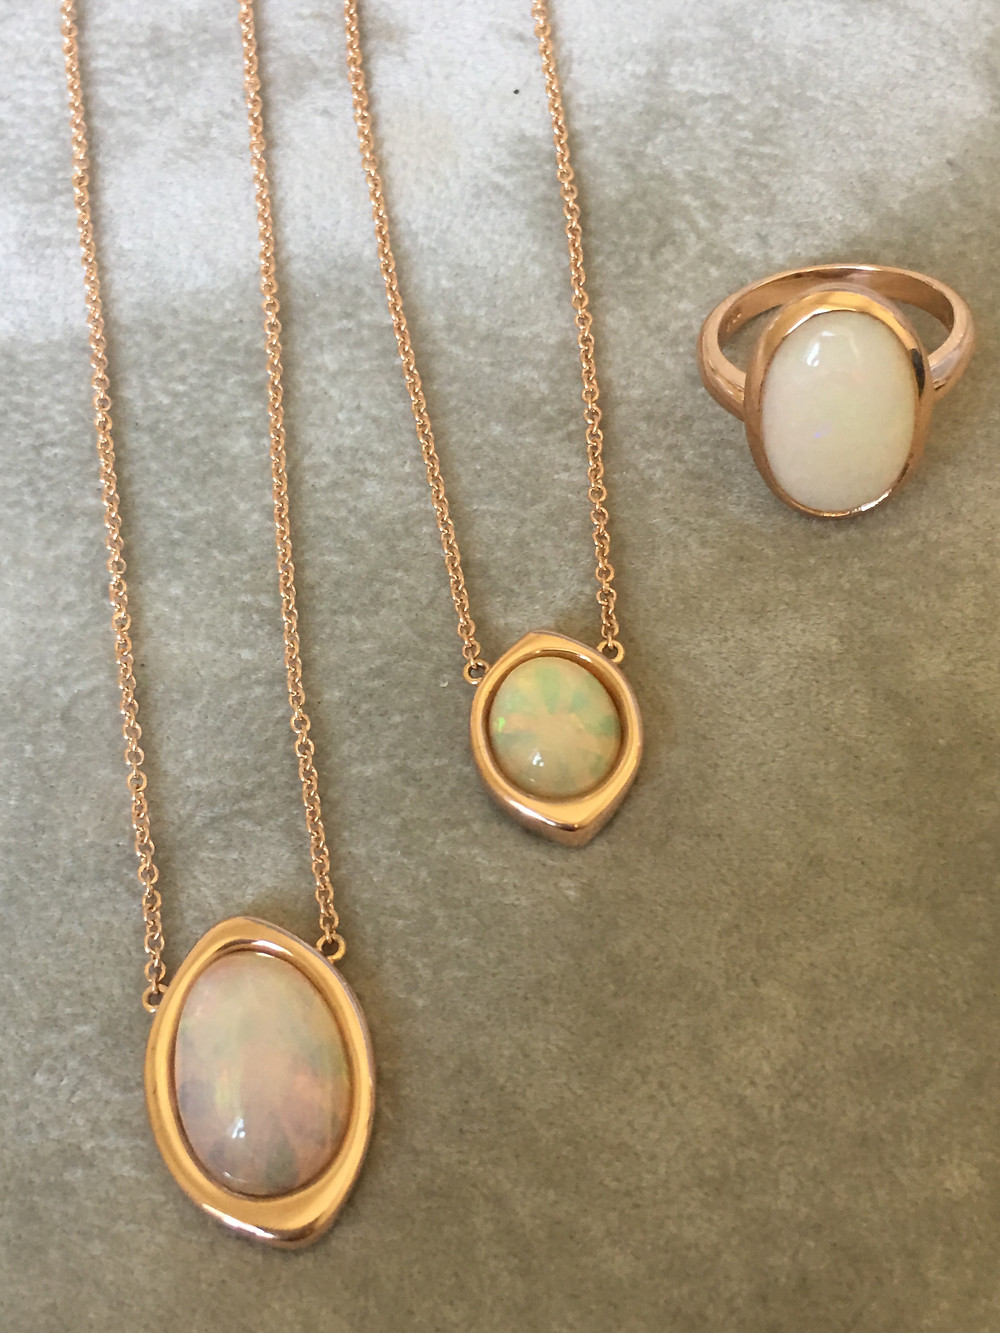 Custom opal pendants and ring made in rose gold